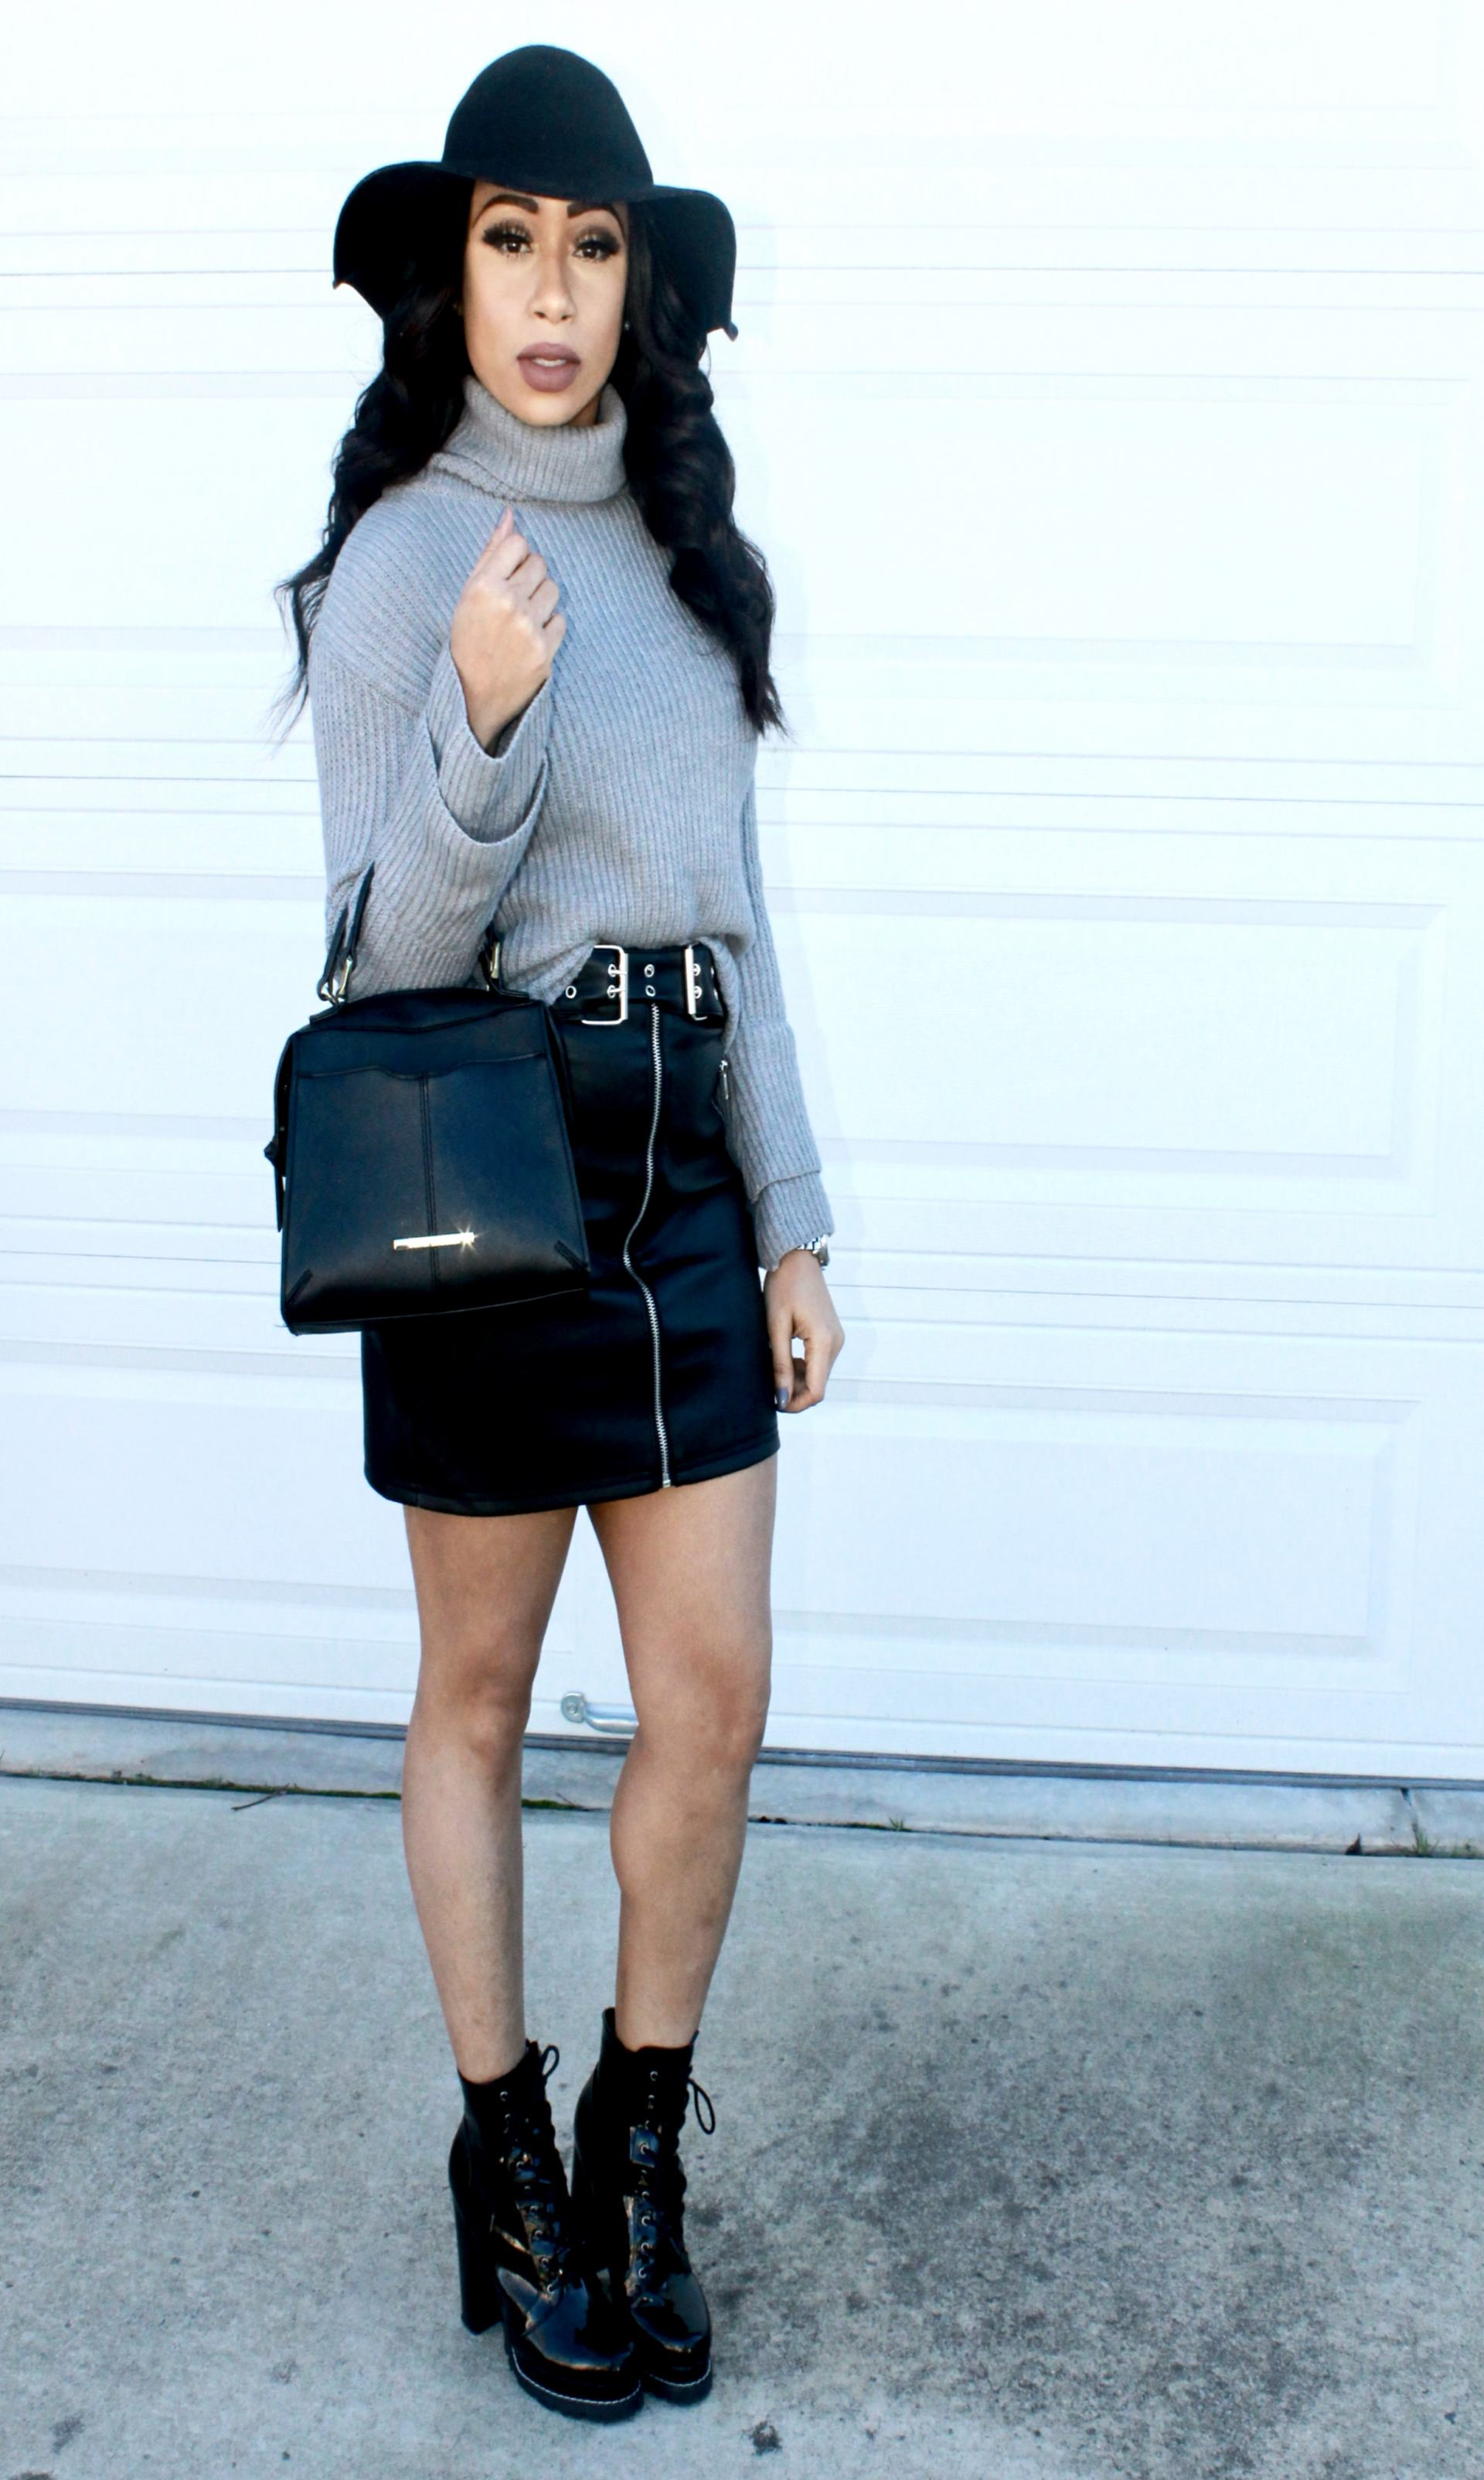 My favorite outfit idea with a chunky sweater